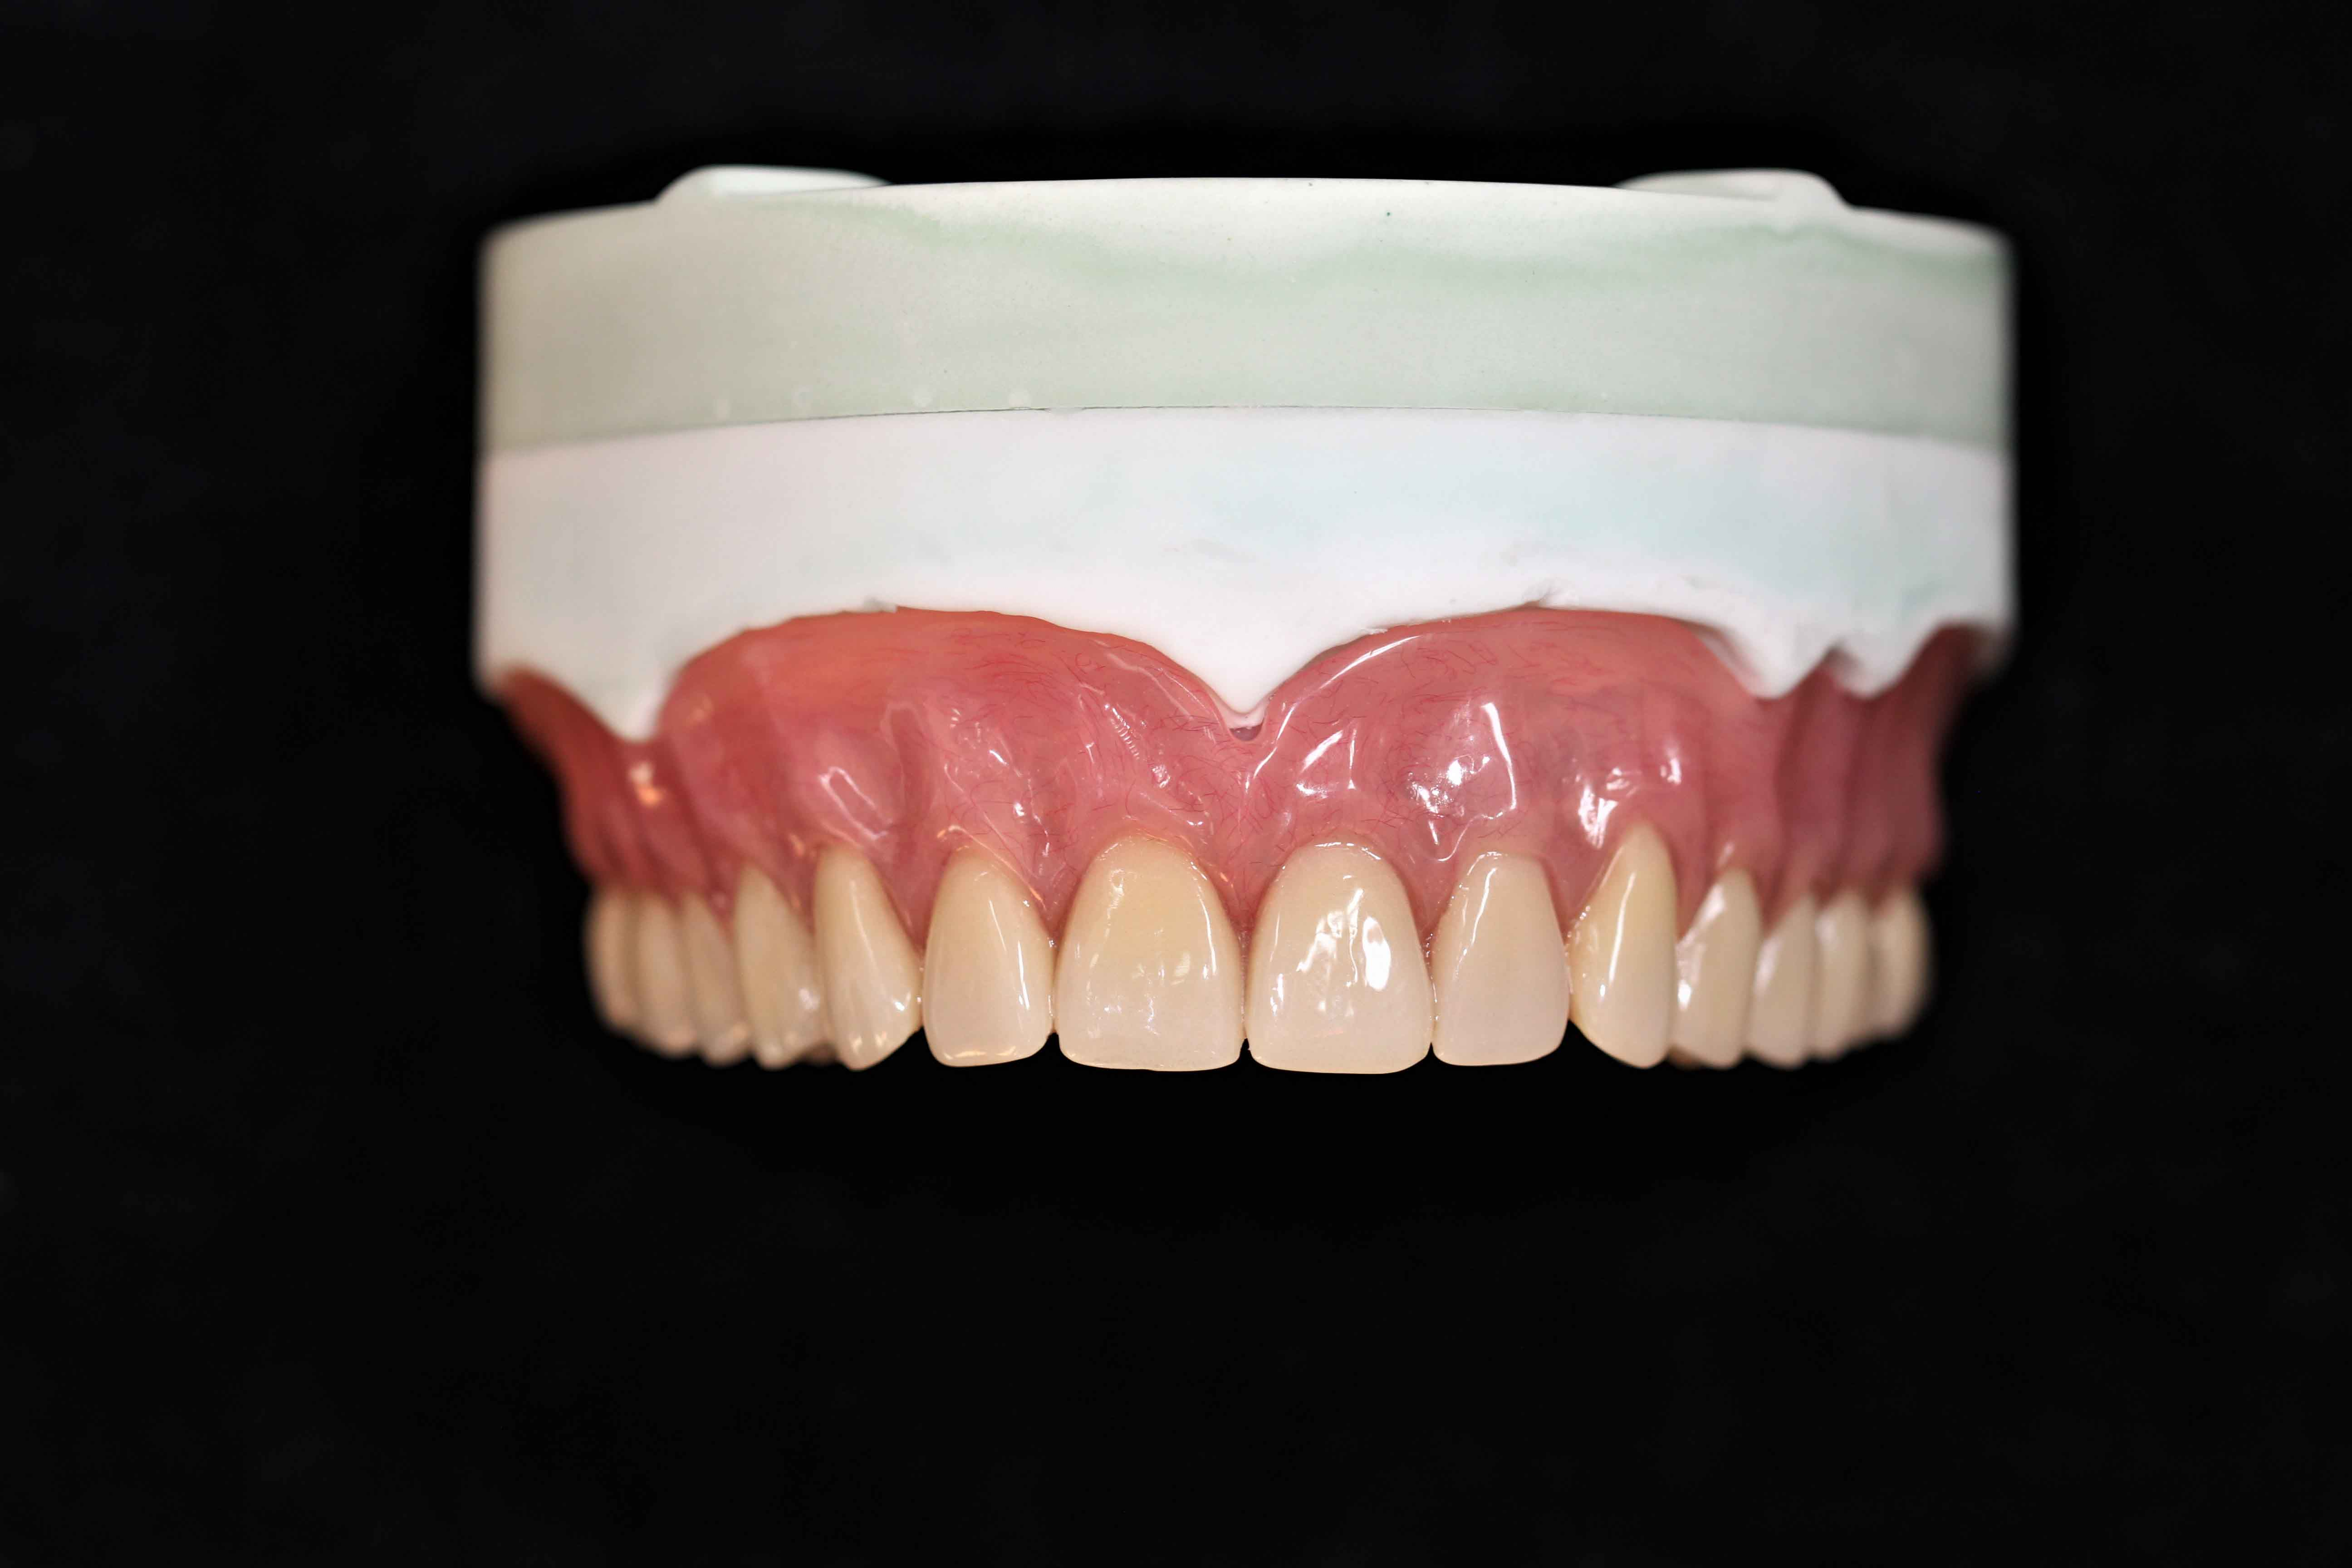 Determination of vertical distance of full denture